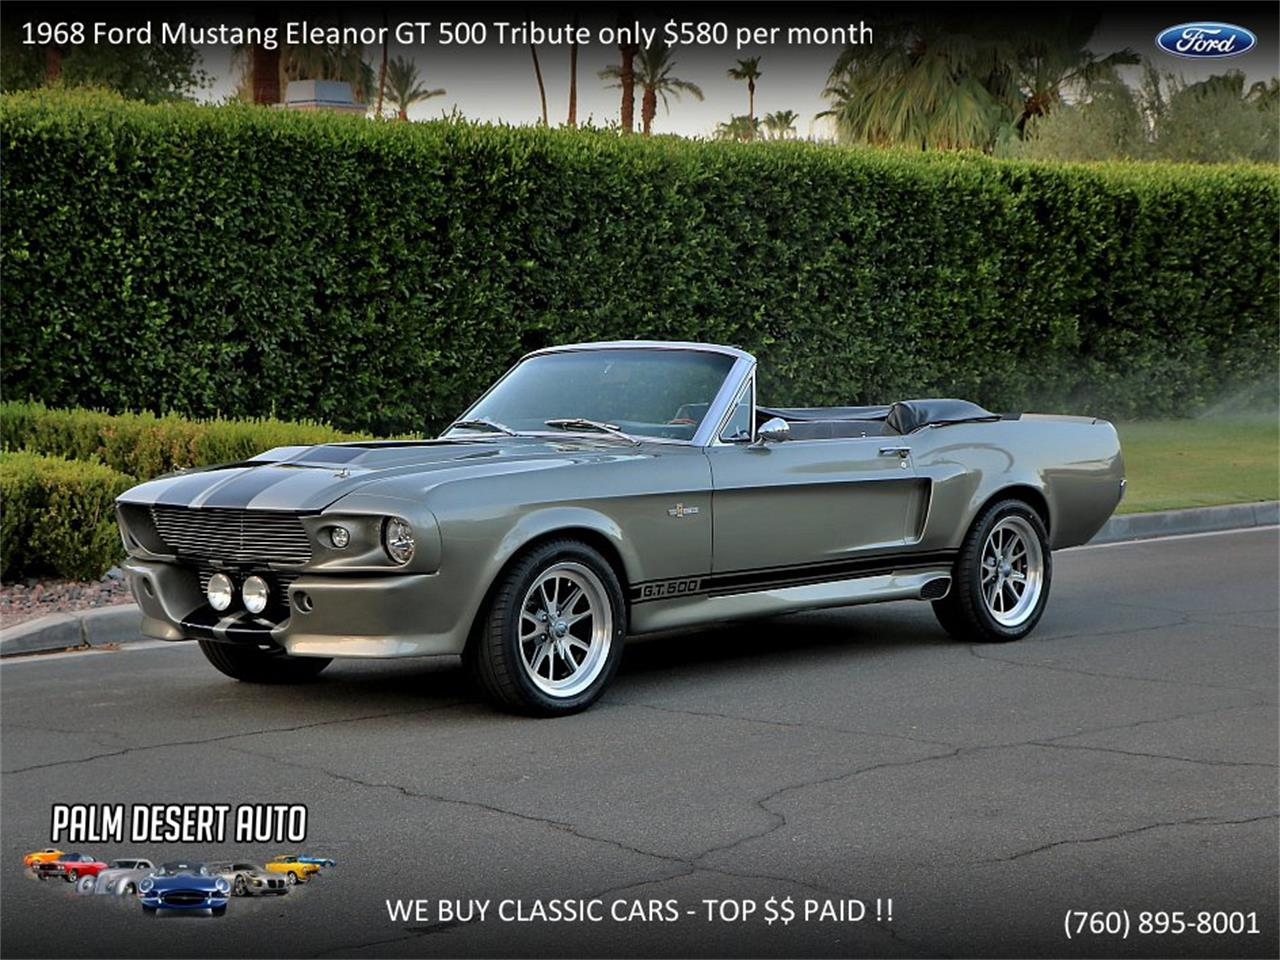 Large picture of classic 1968 ford mustang shelby gt500 located in palm desert california 59750 00